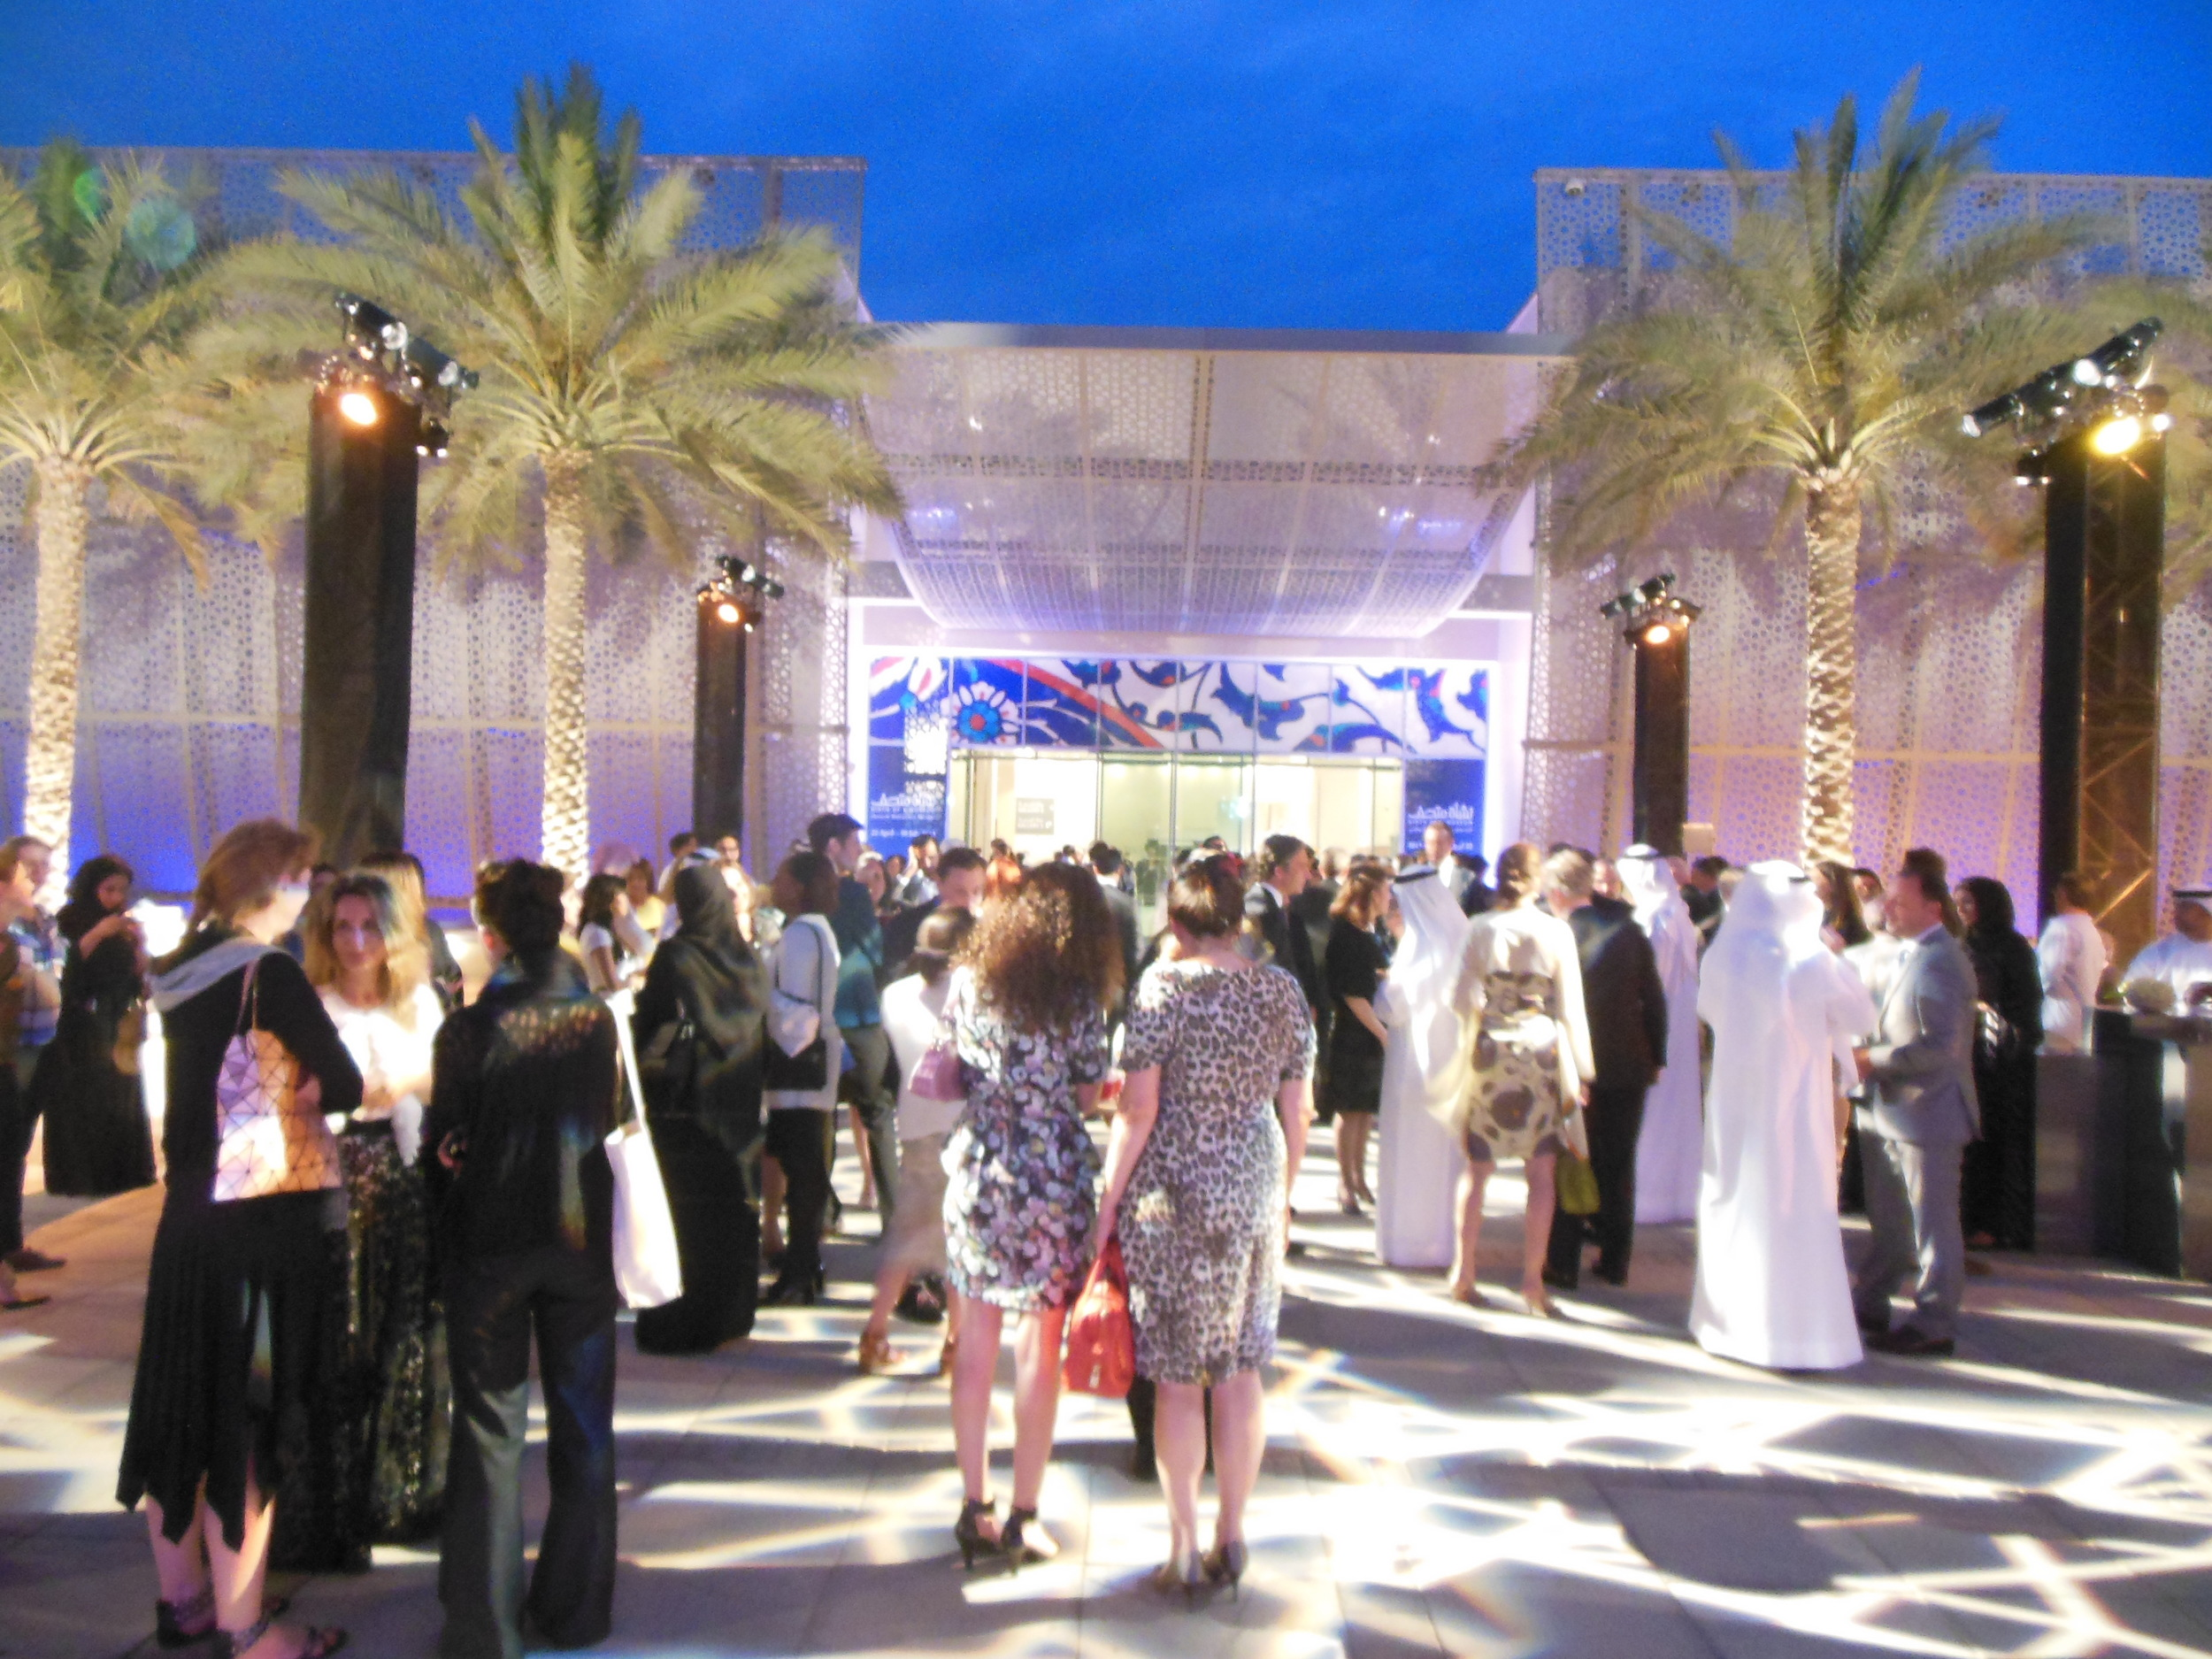 Opening night at the Manarat al Saadiyat exhibition centre. Photo: Lucy Rees